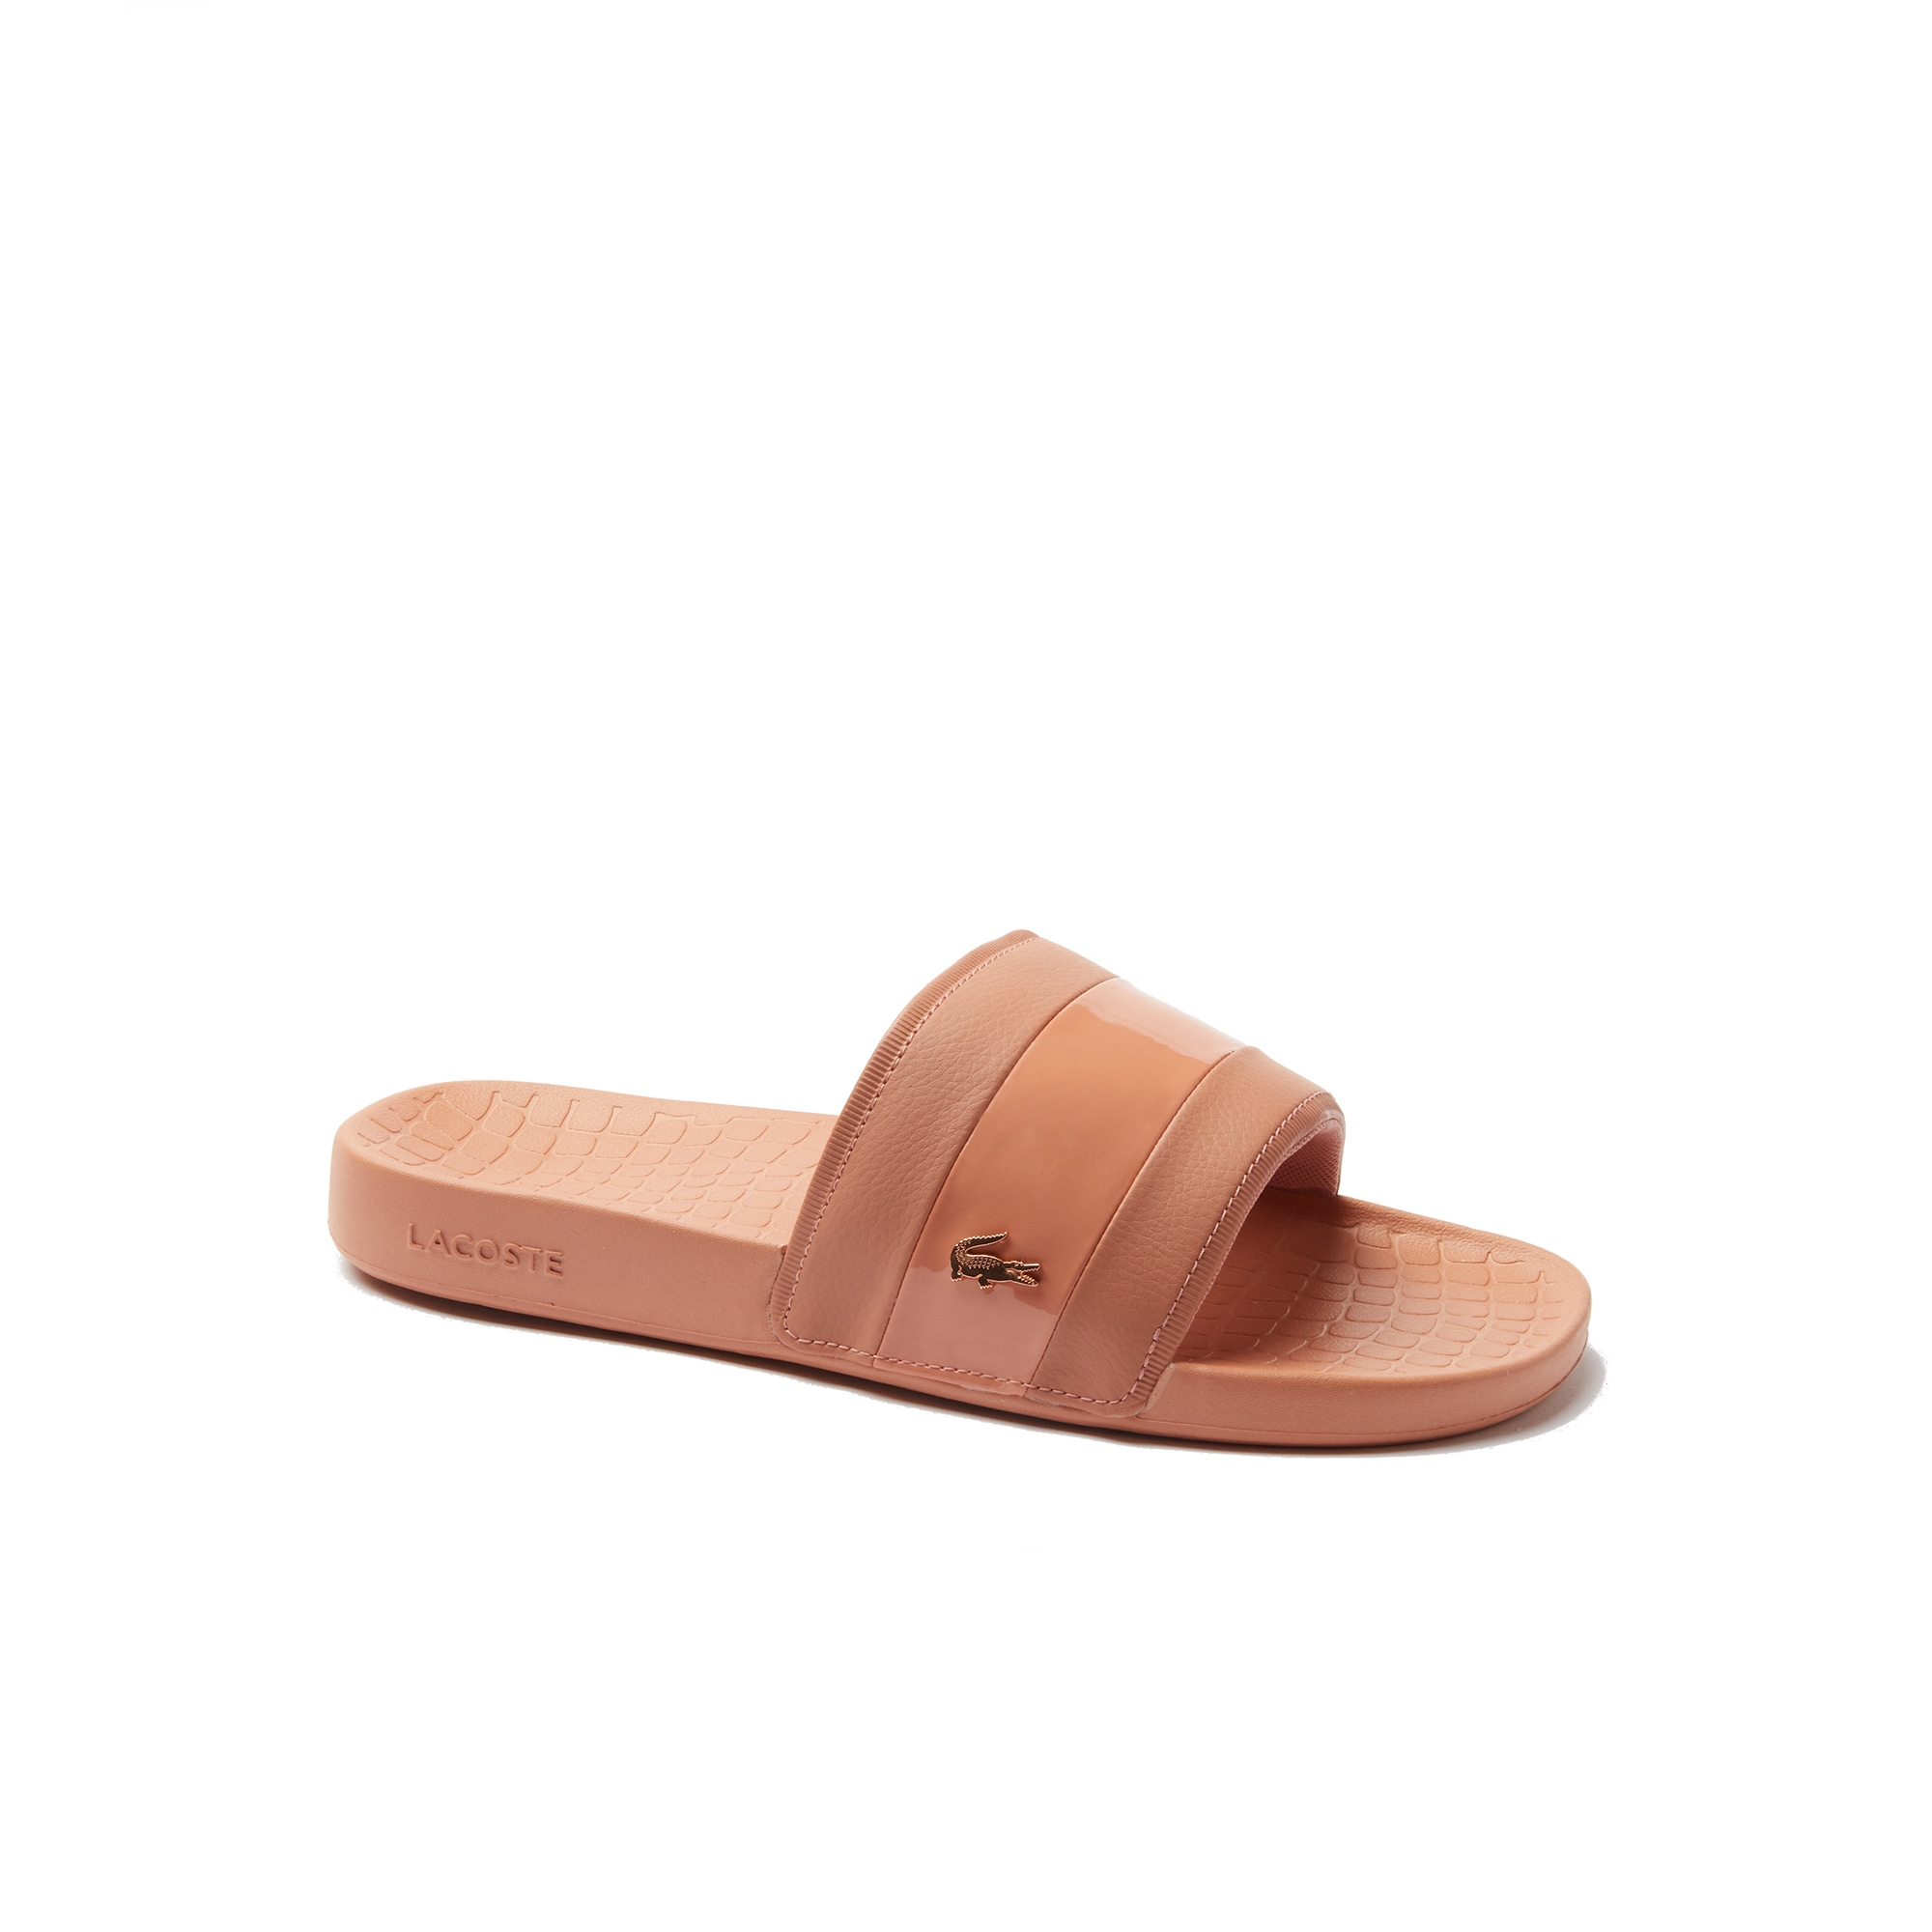 7dbfff88c4c8 Women s Fraisier Leather Slides